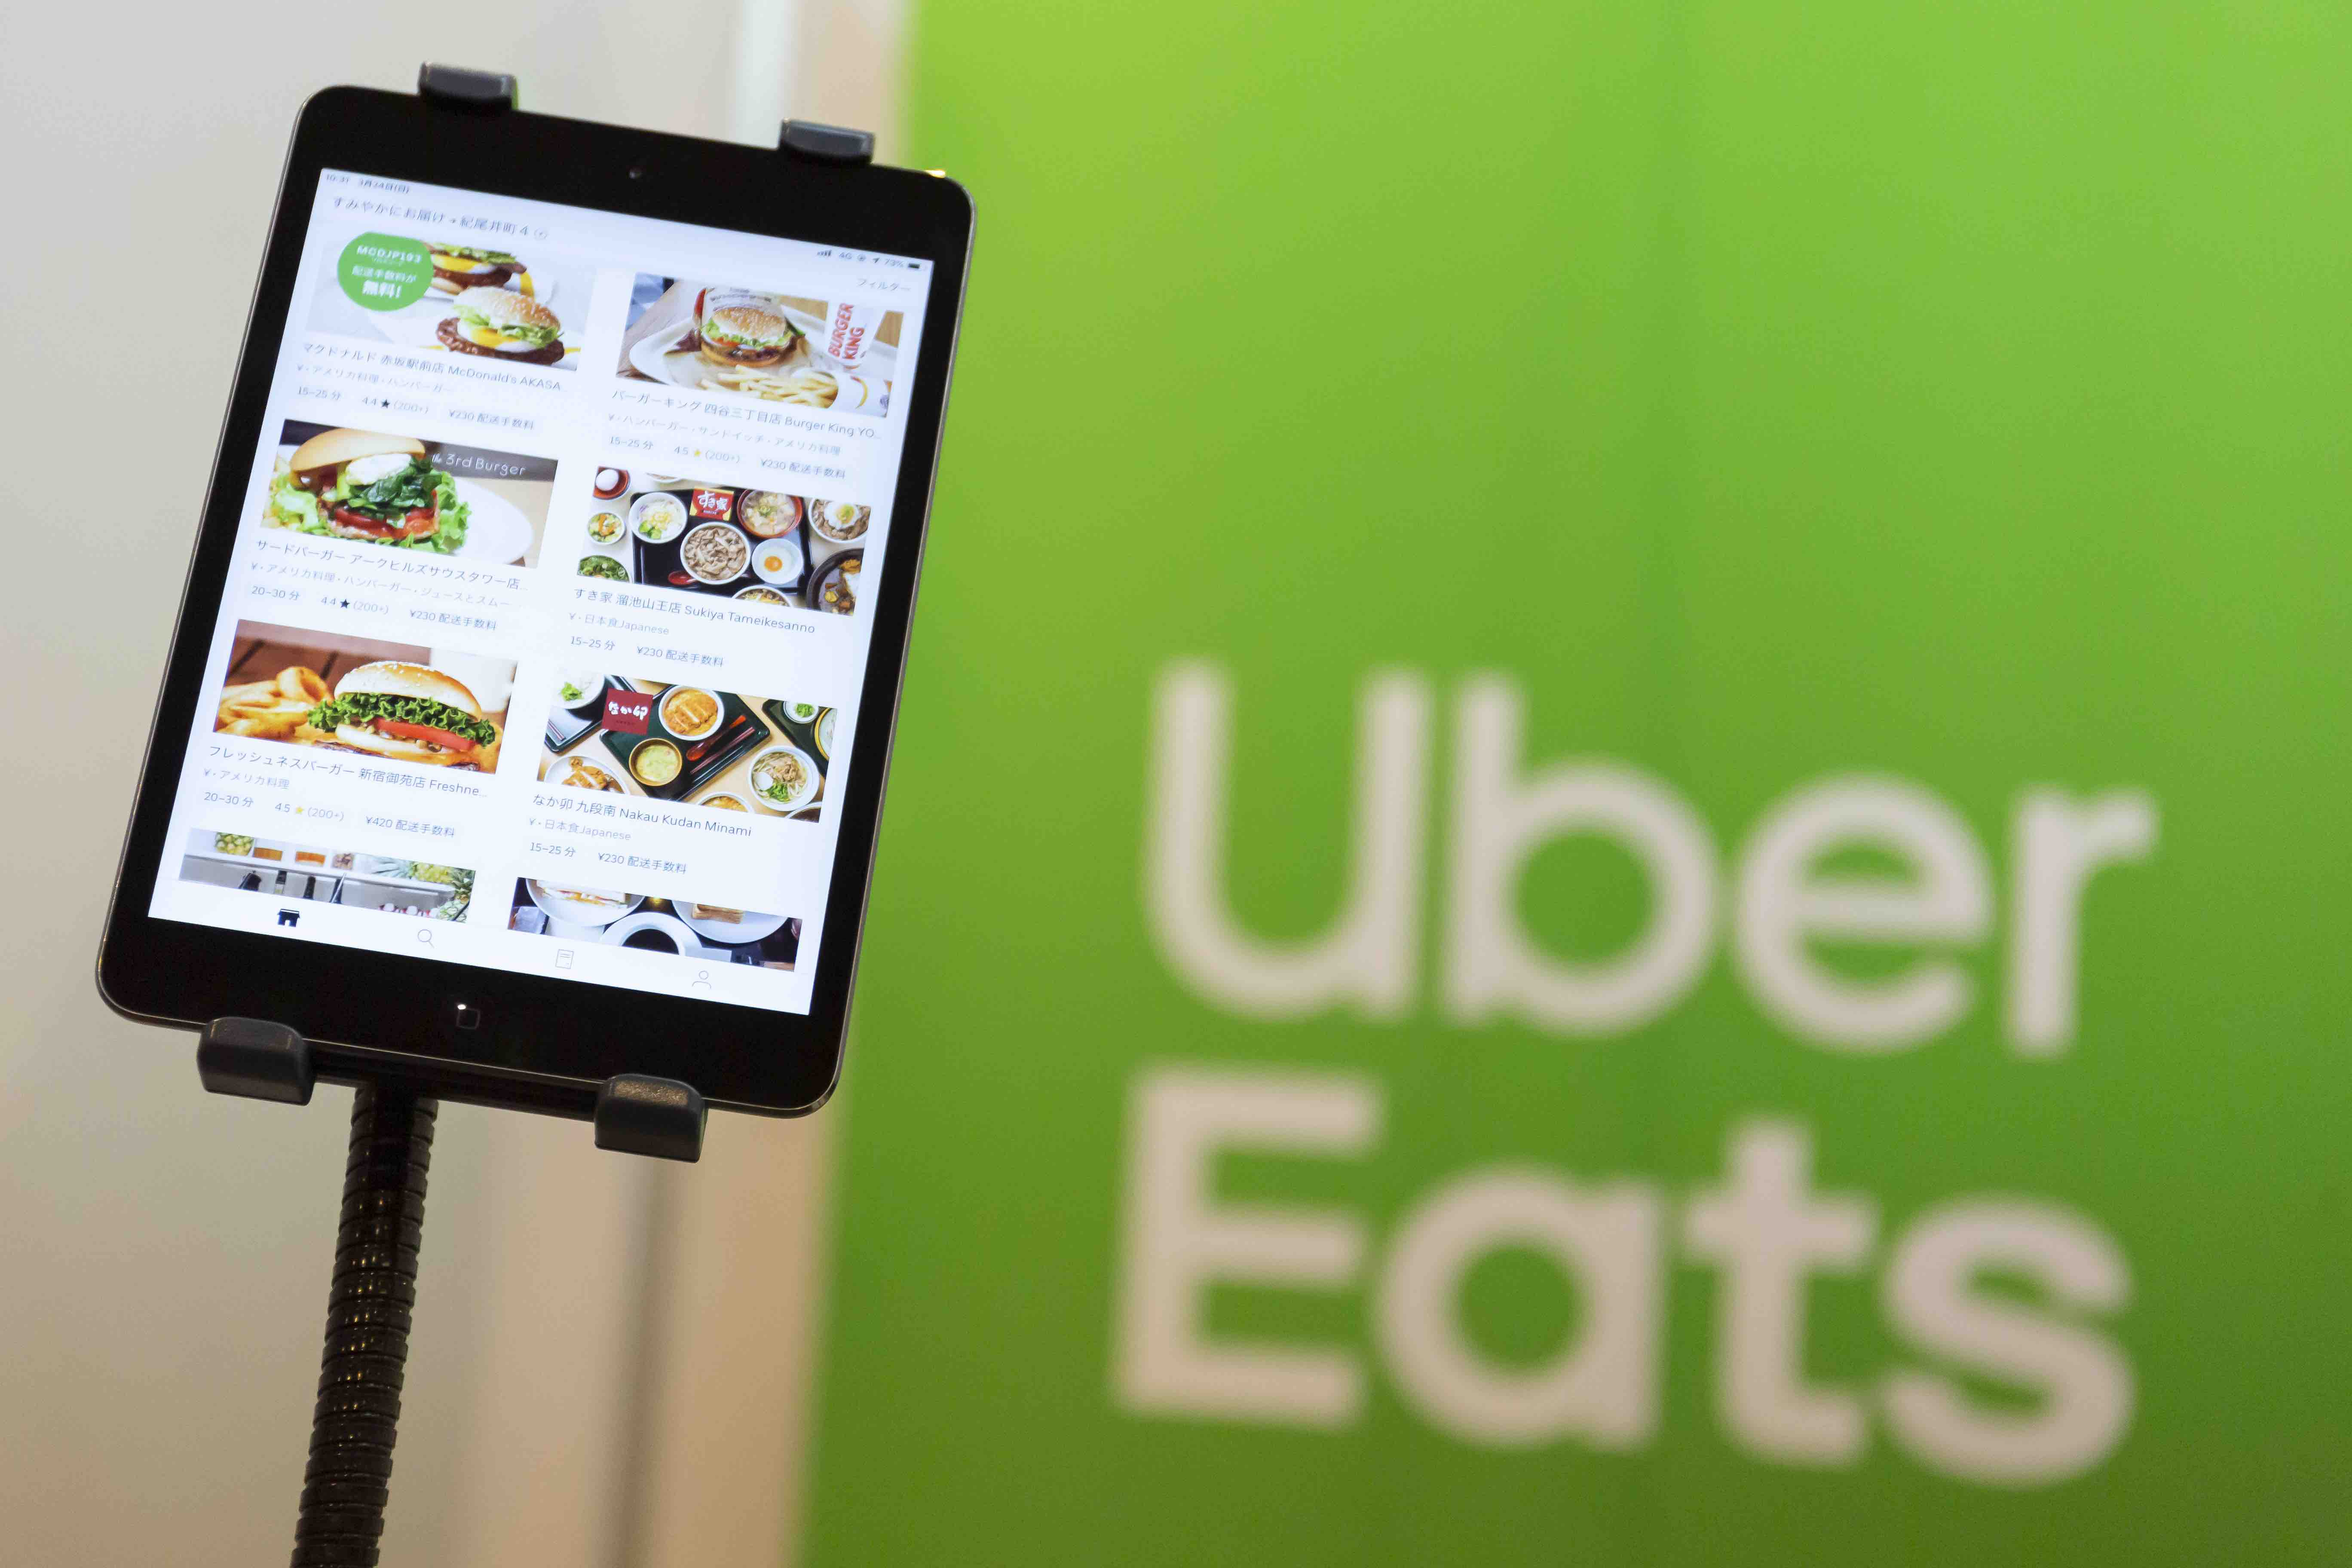 uber eats rideshare app on ipad for ordering food delivery